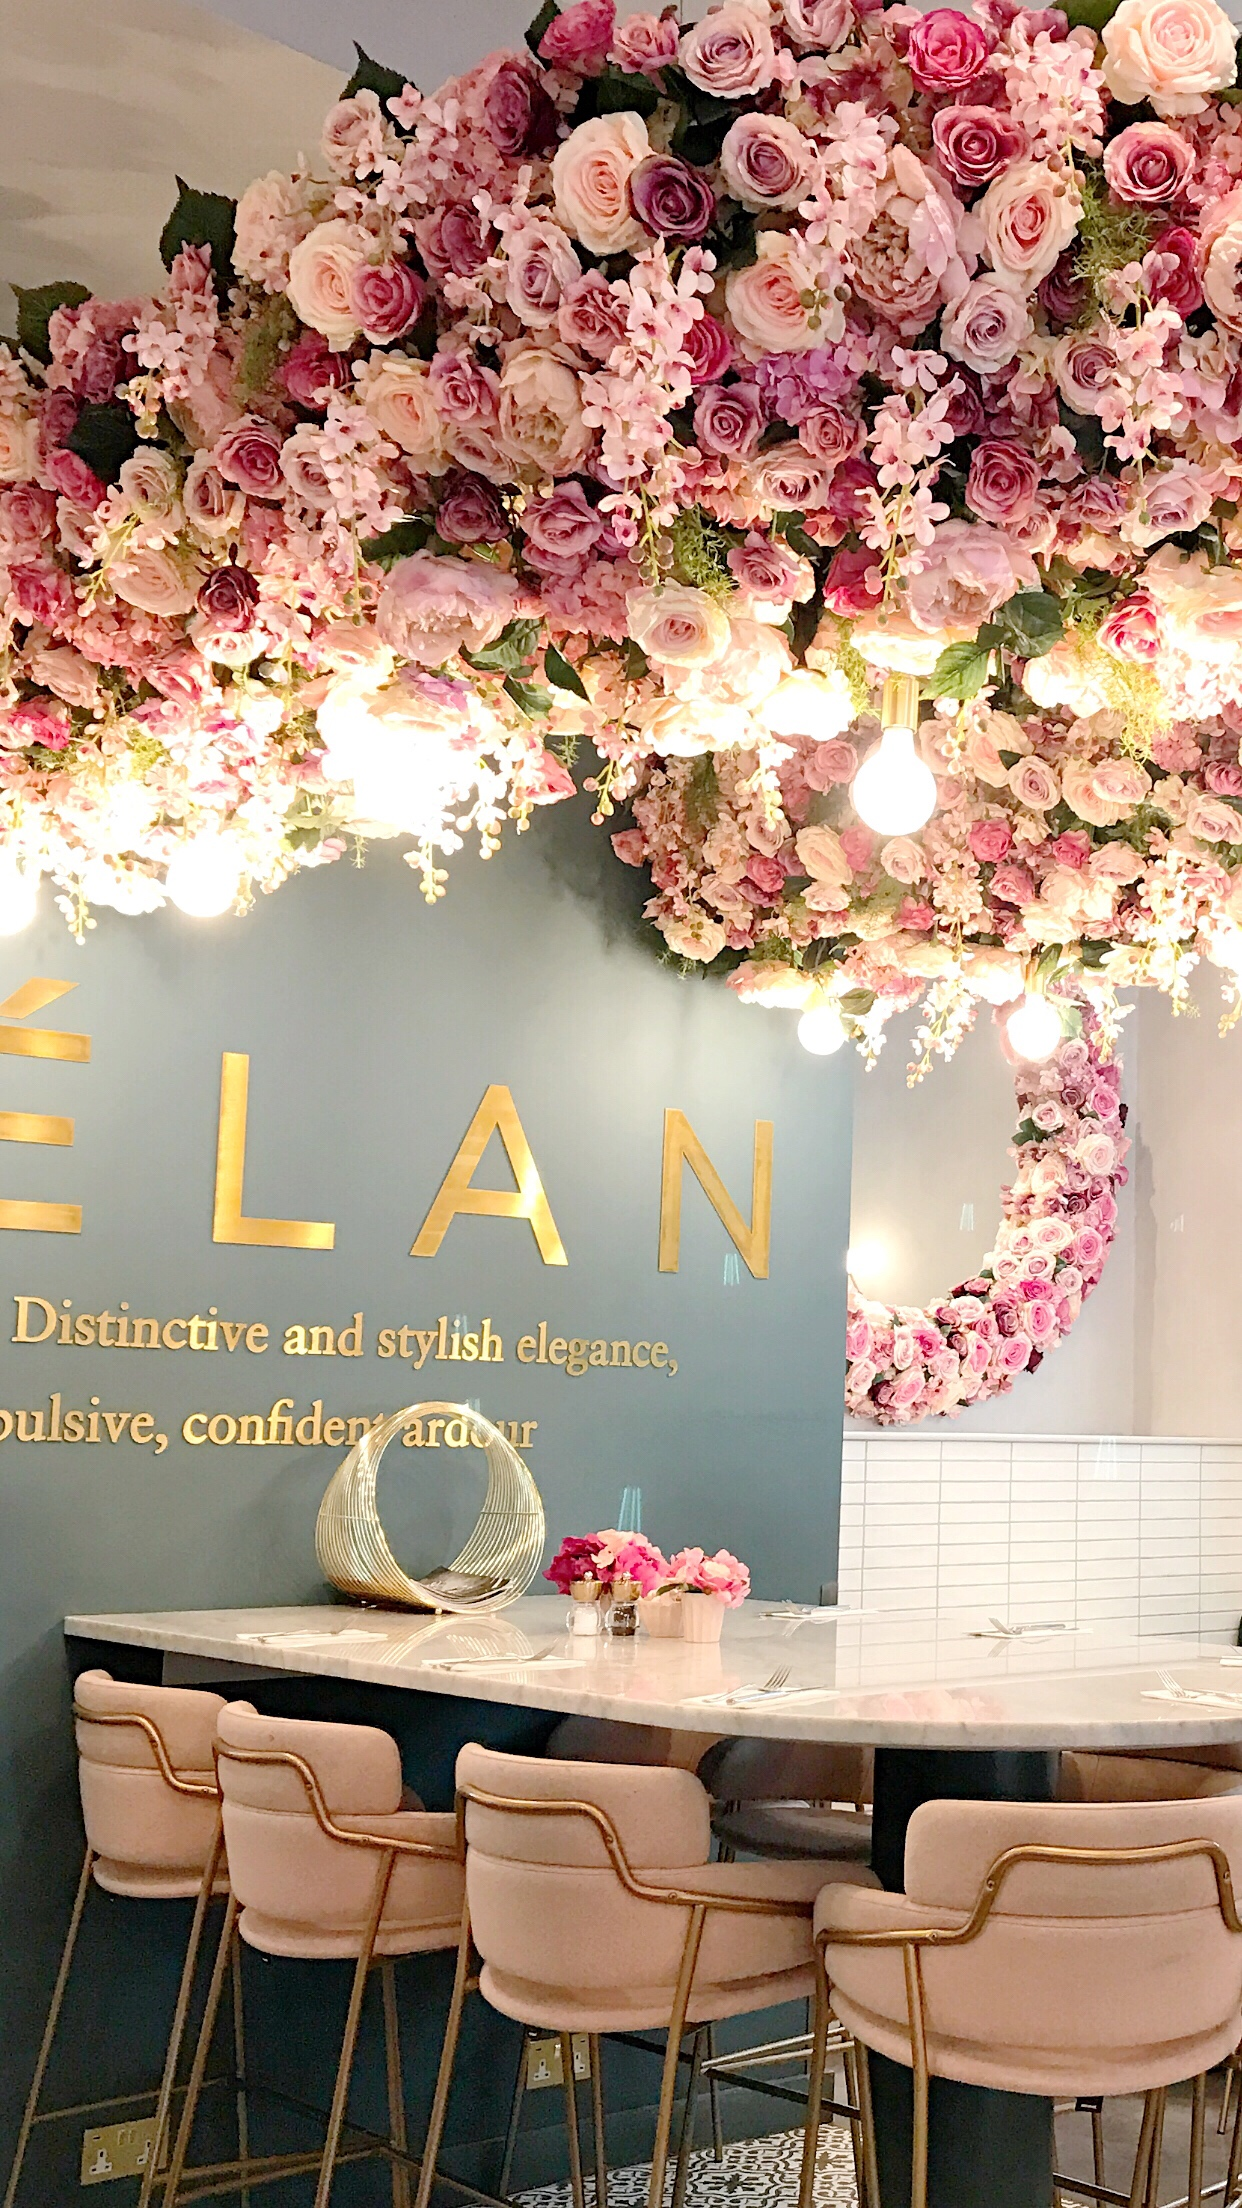 Picture Perfect London: Brunch At Elan Cafe